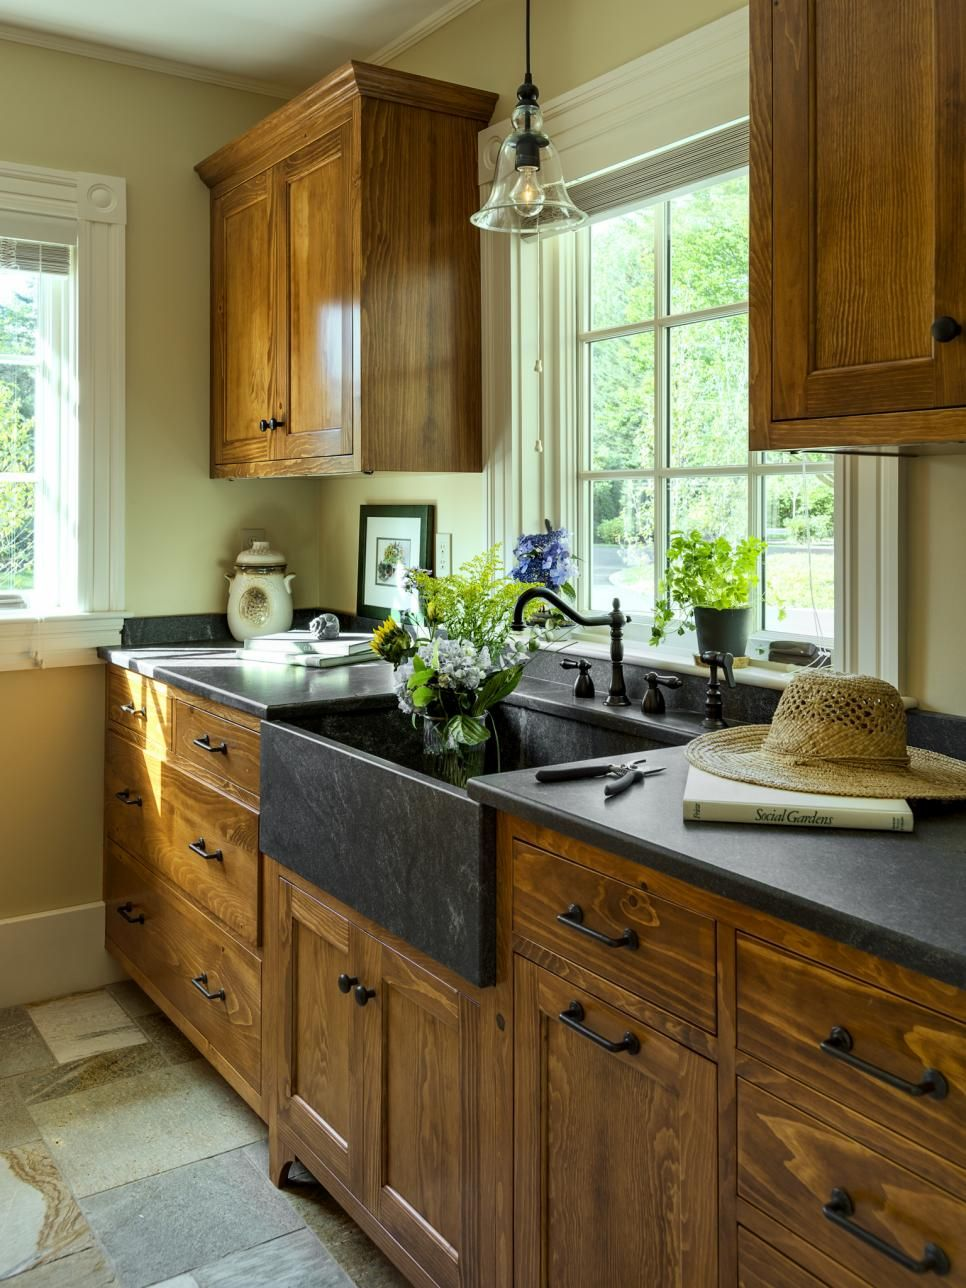 Modern Kitchens With Unpainted Cabinets Cottage Style Kitchen Rustic Kitchen Cabinets Kitchen Cabinet Design